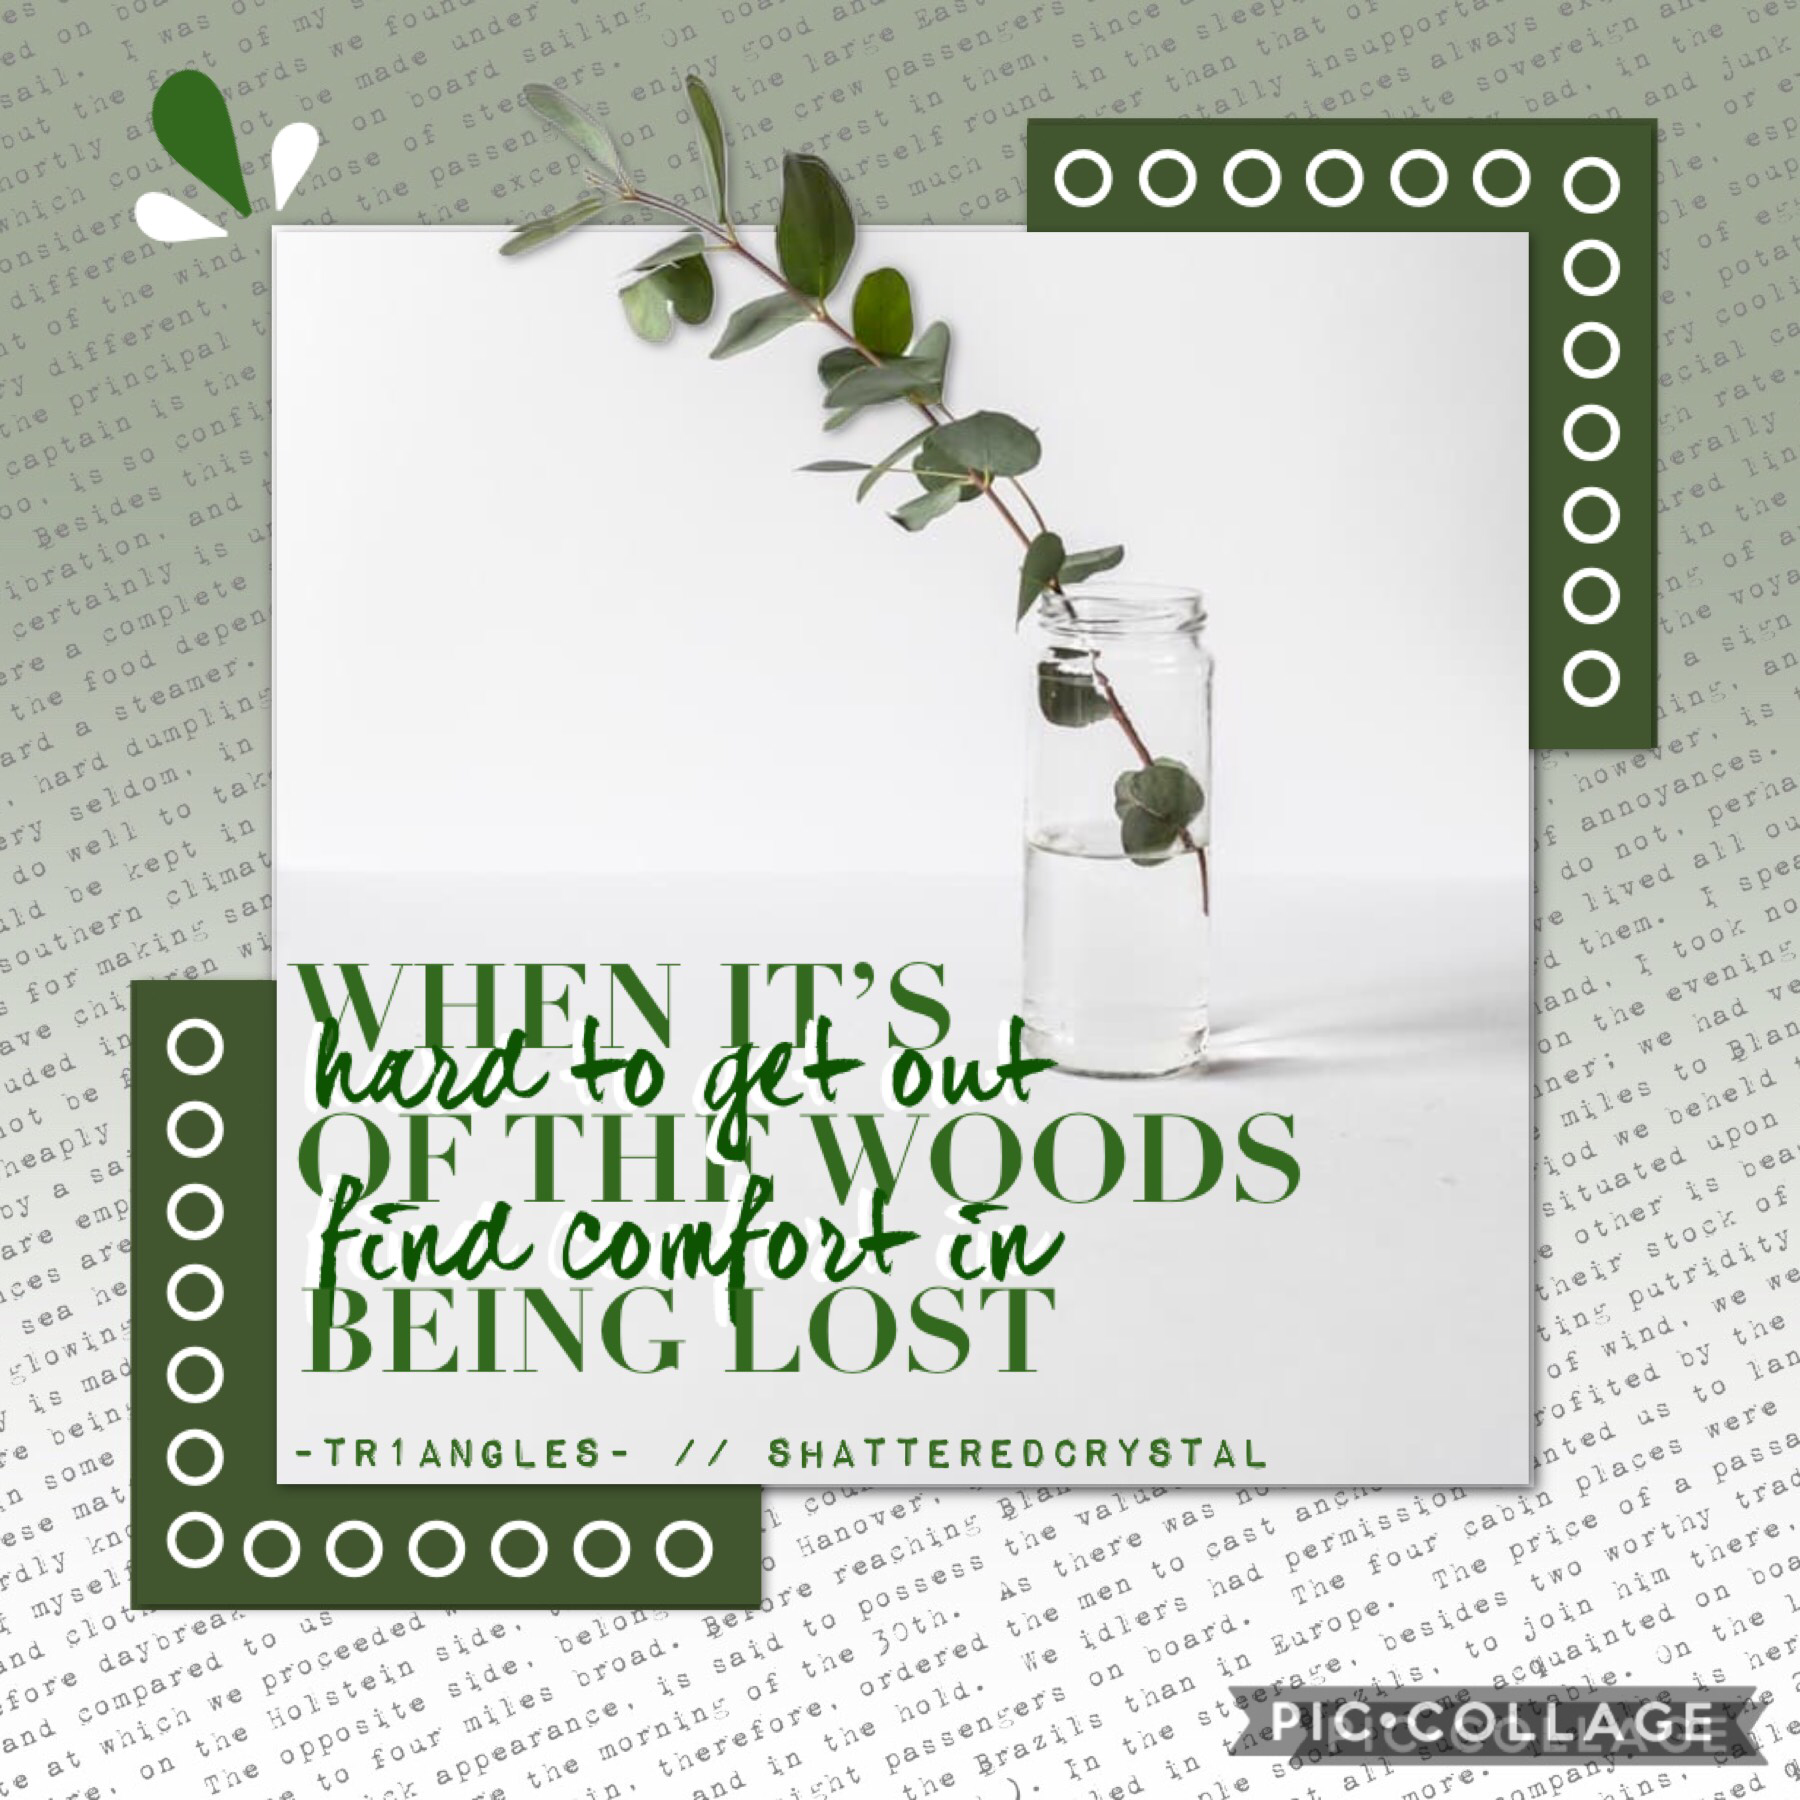 🍃 COLLAB WITH 🍃  ShatteredCrystal!! She's an amazing collab partner and super talented! Go follow her :) I did the text and she chose the quote and background! QOTD: Green thumb? AOTD: I like plant... but they don't like me ;-;